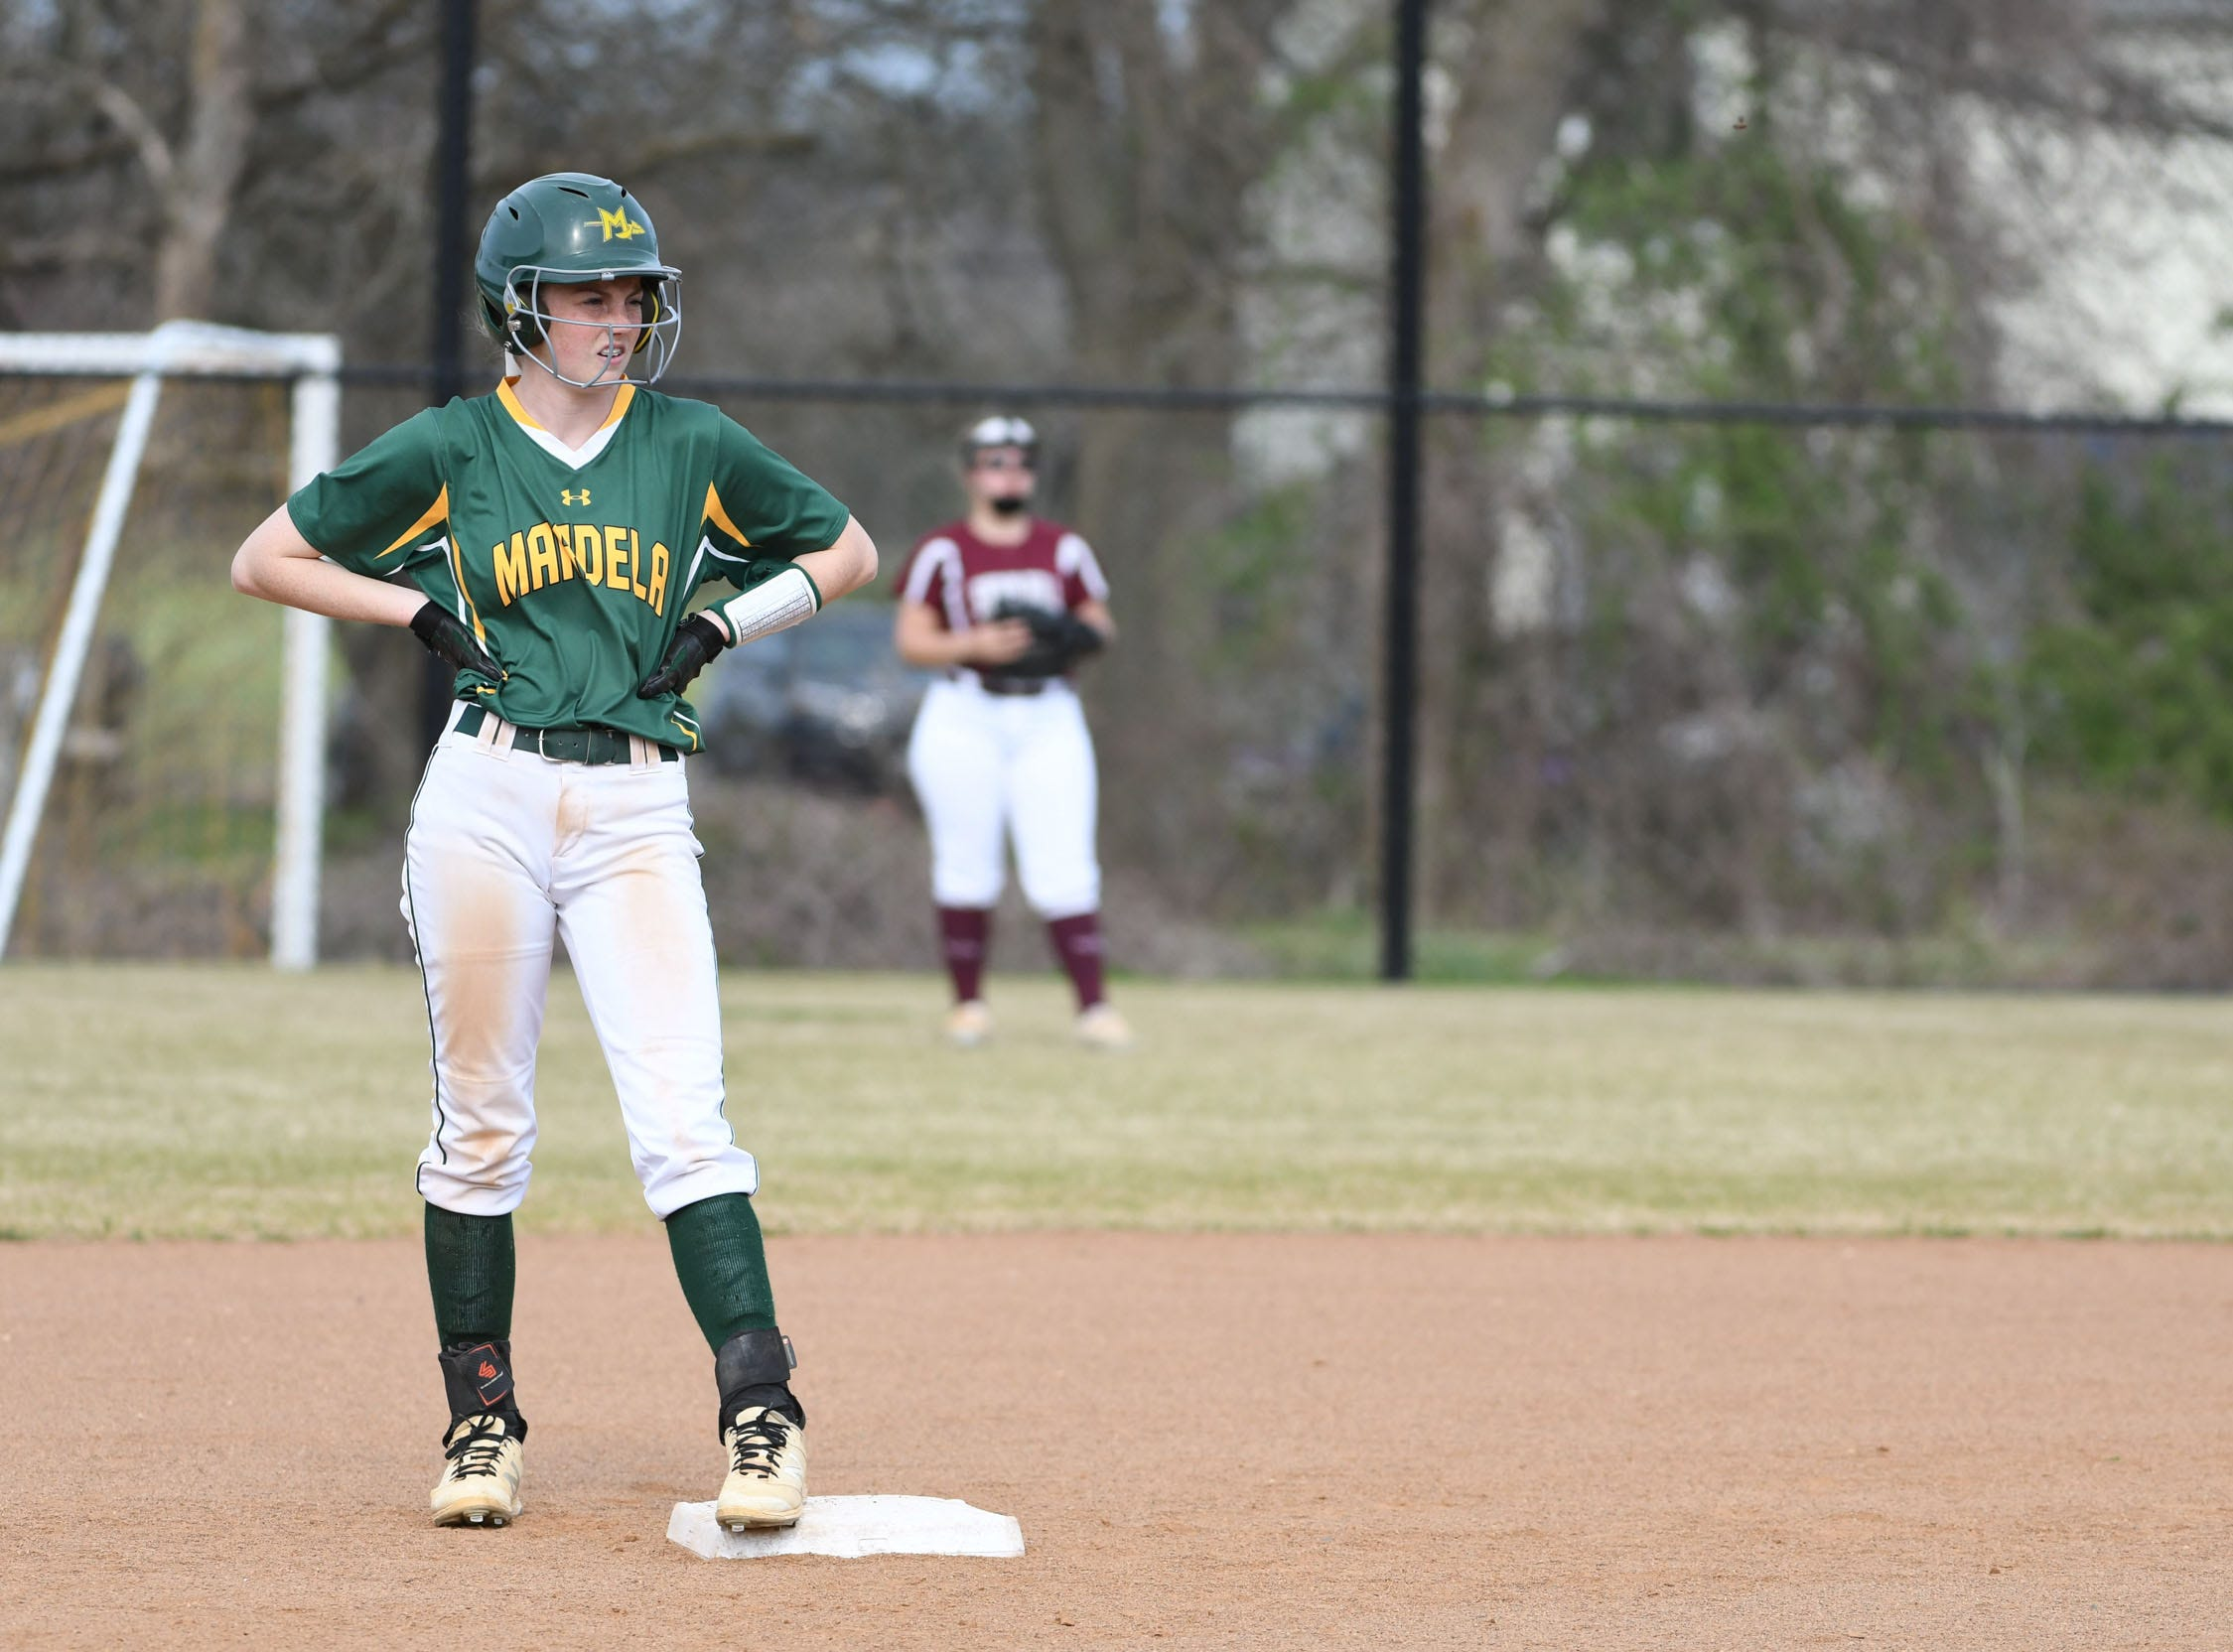 Mardela's Alexa Jones on second against Snow Hill on Monday, April 8, 2019 in Snow Hill, Md.